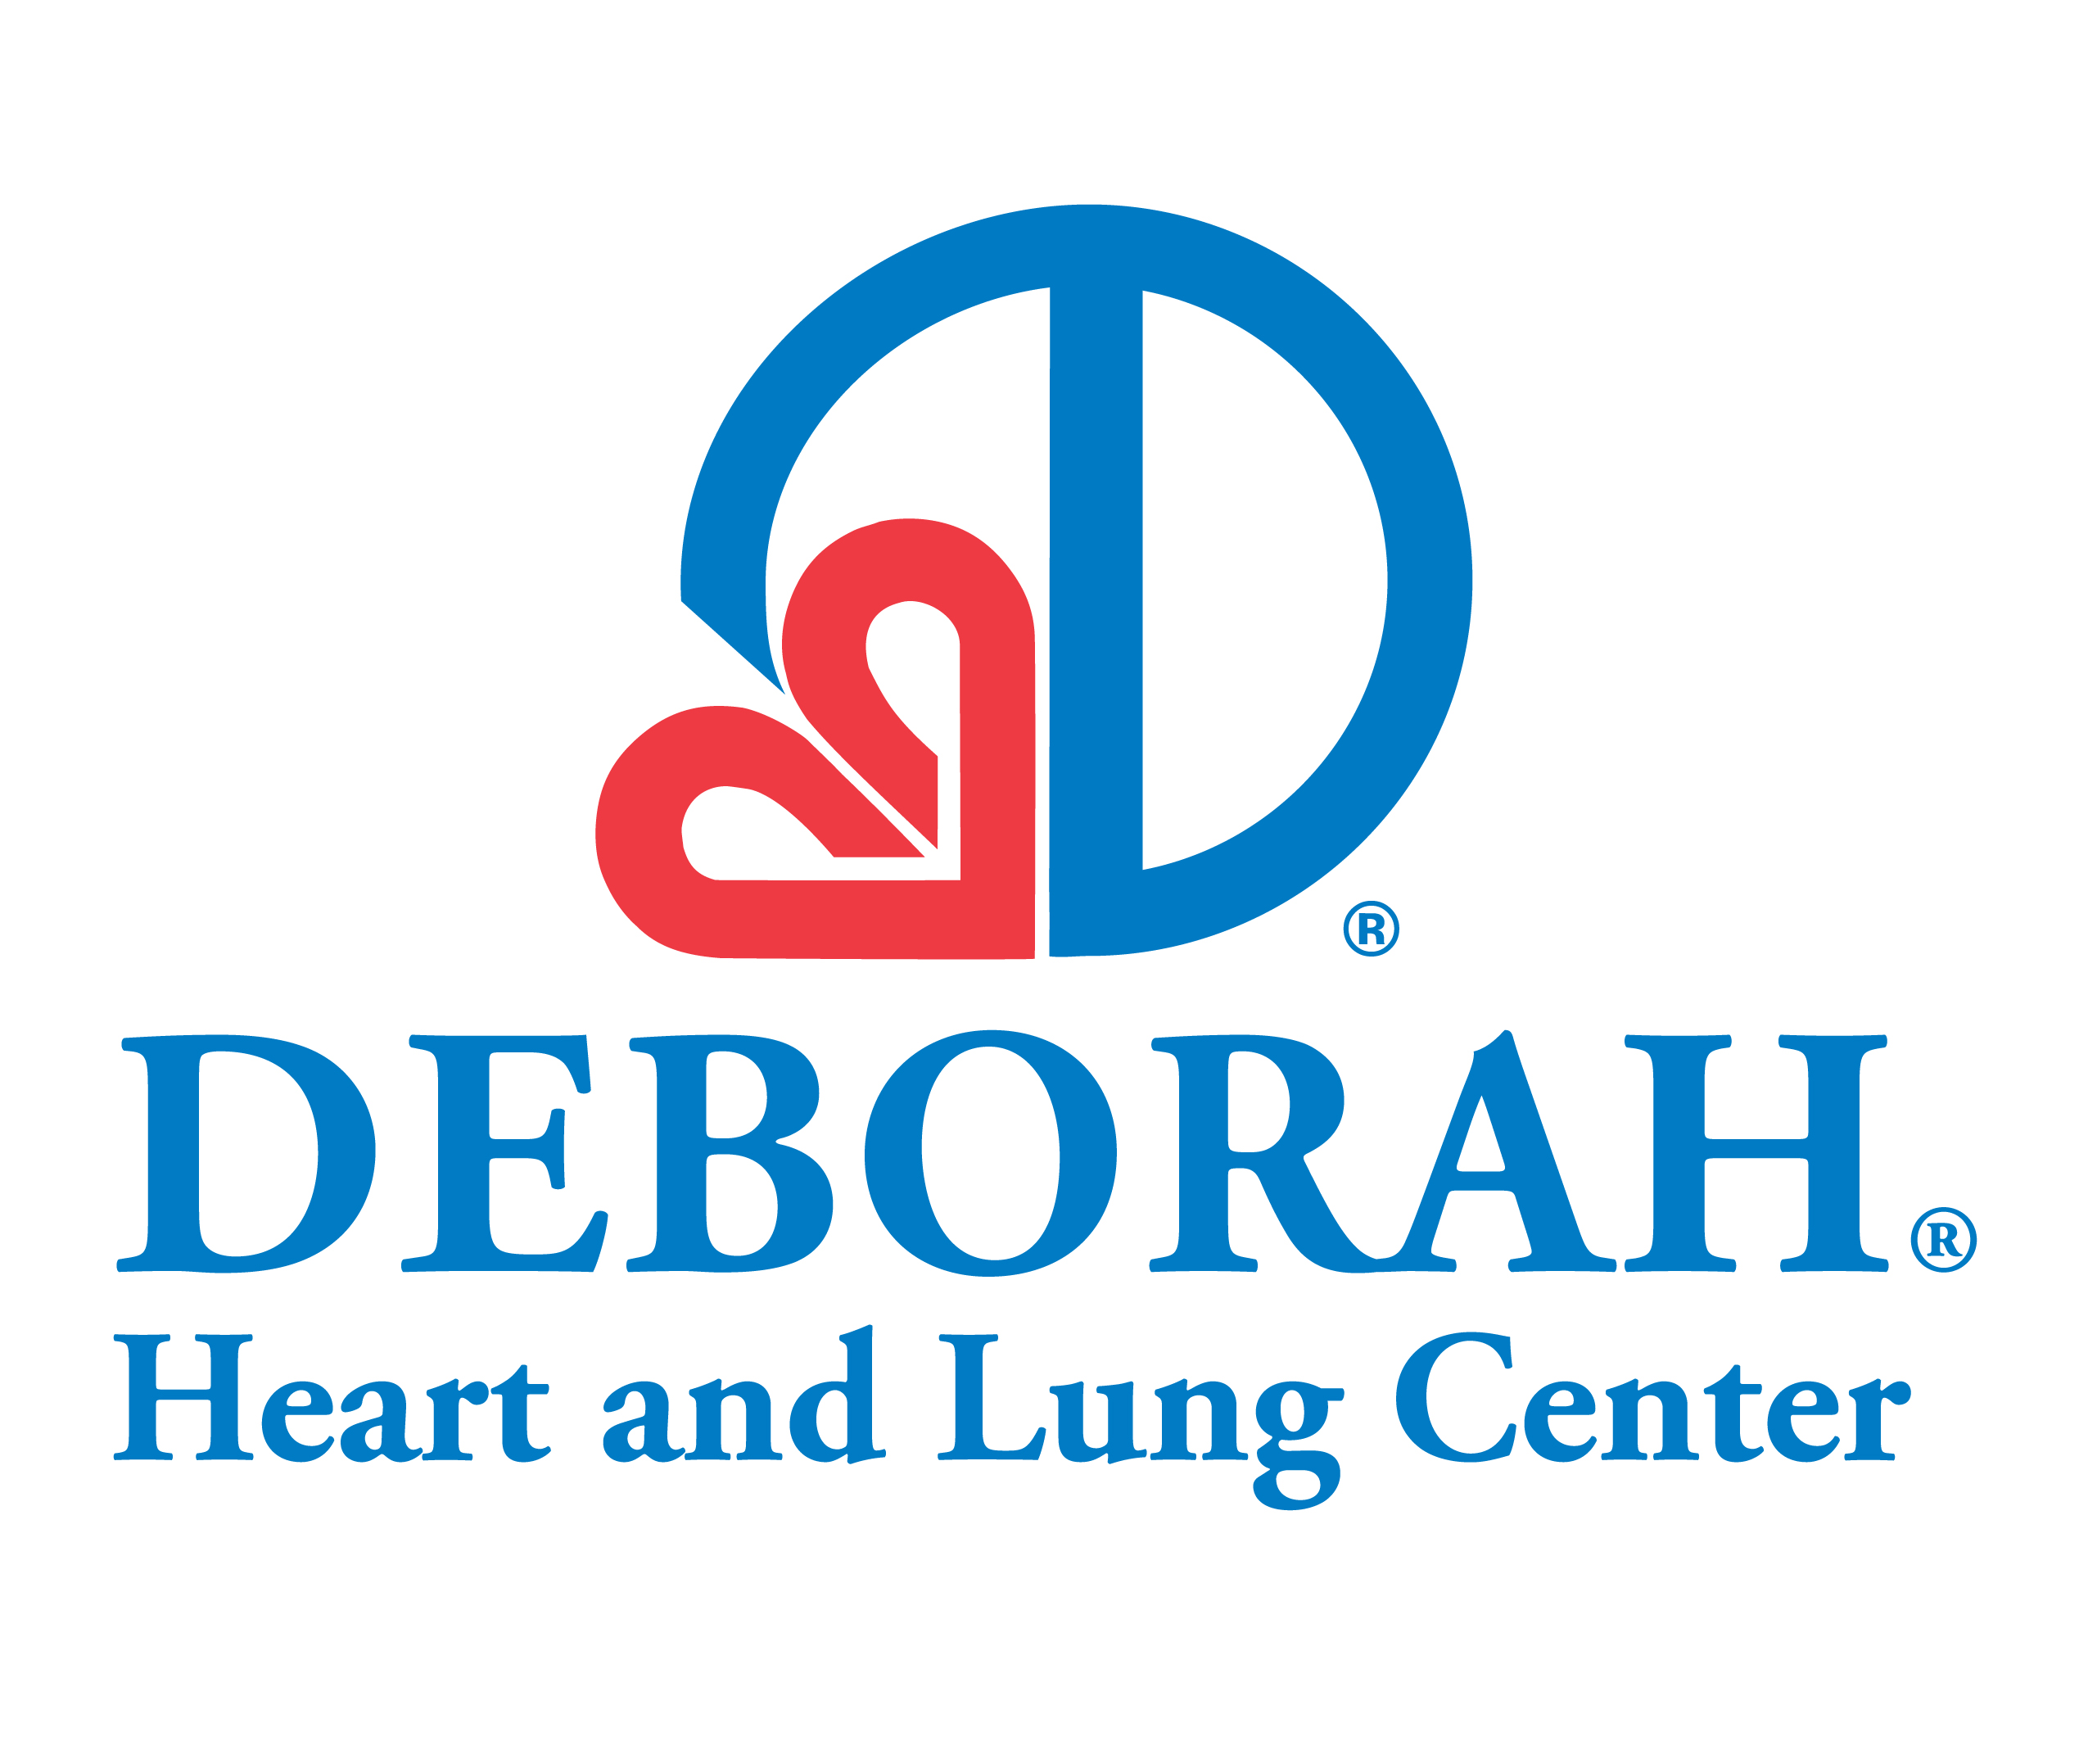 deborah heart and lung